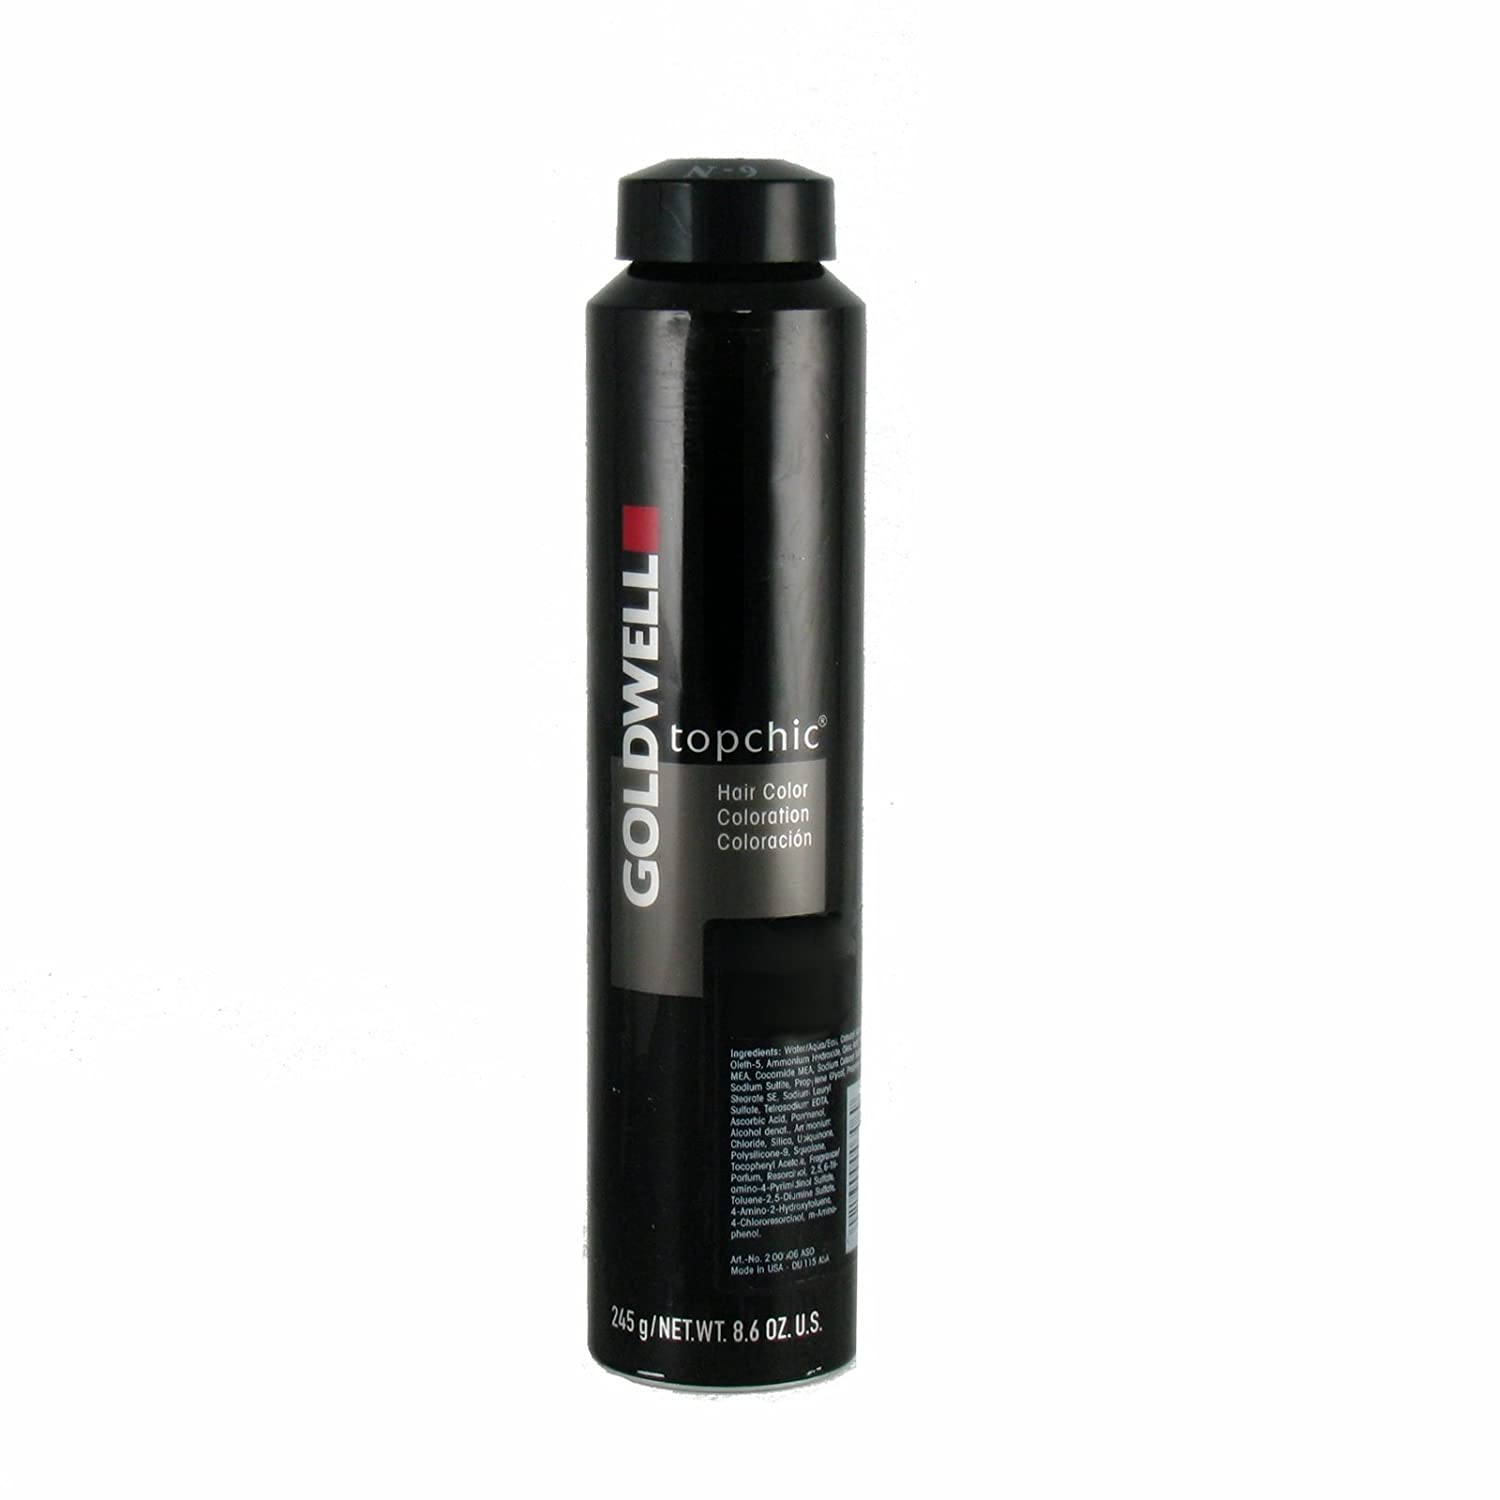 Goldwell Topchic Hair Color Coloration (Can) 2N Black Goldwell Cosmetics Inc. 4021609003021